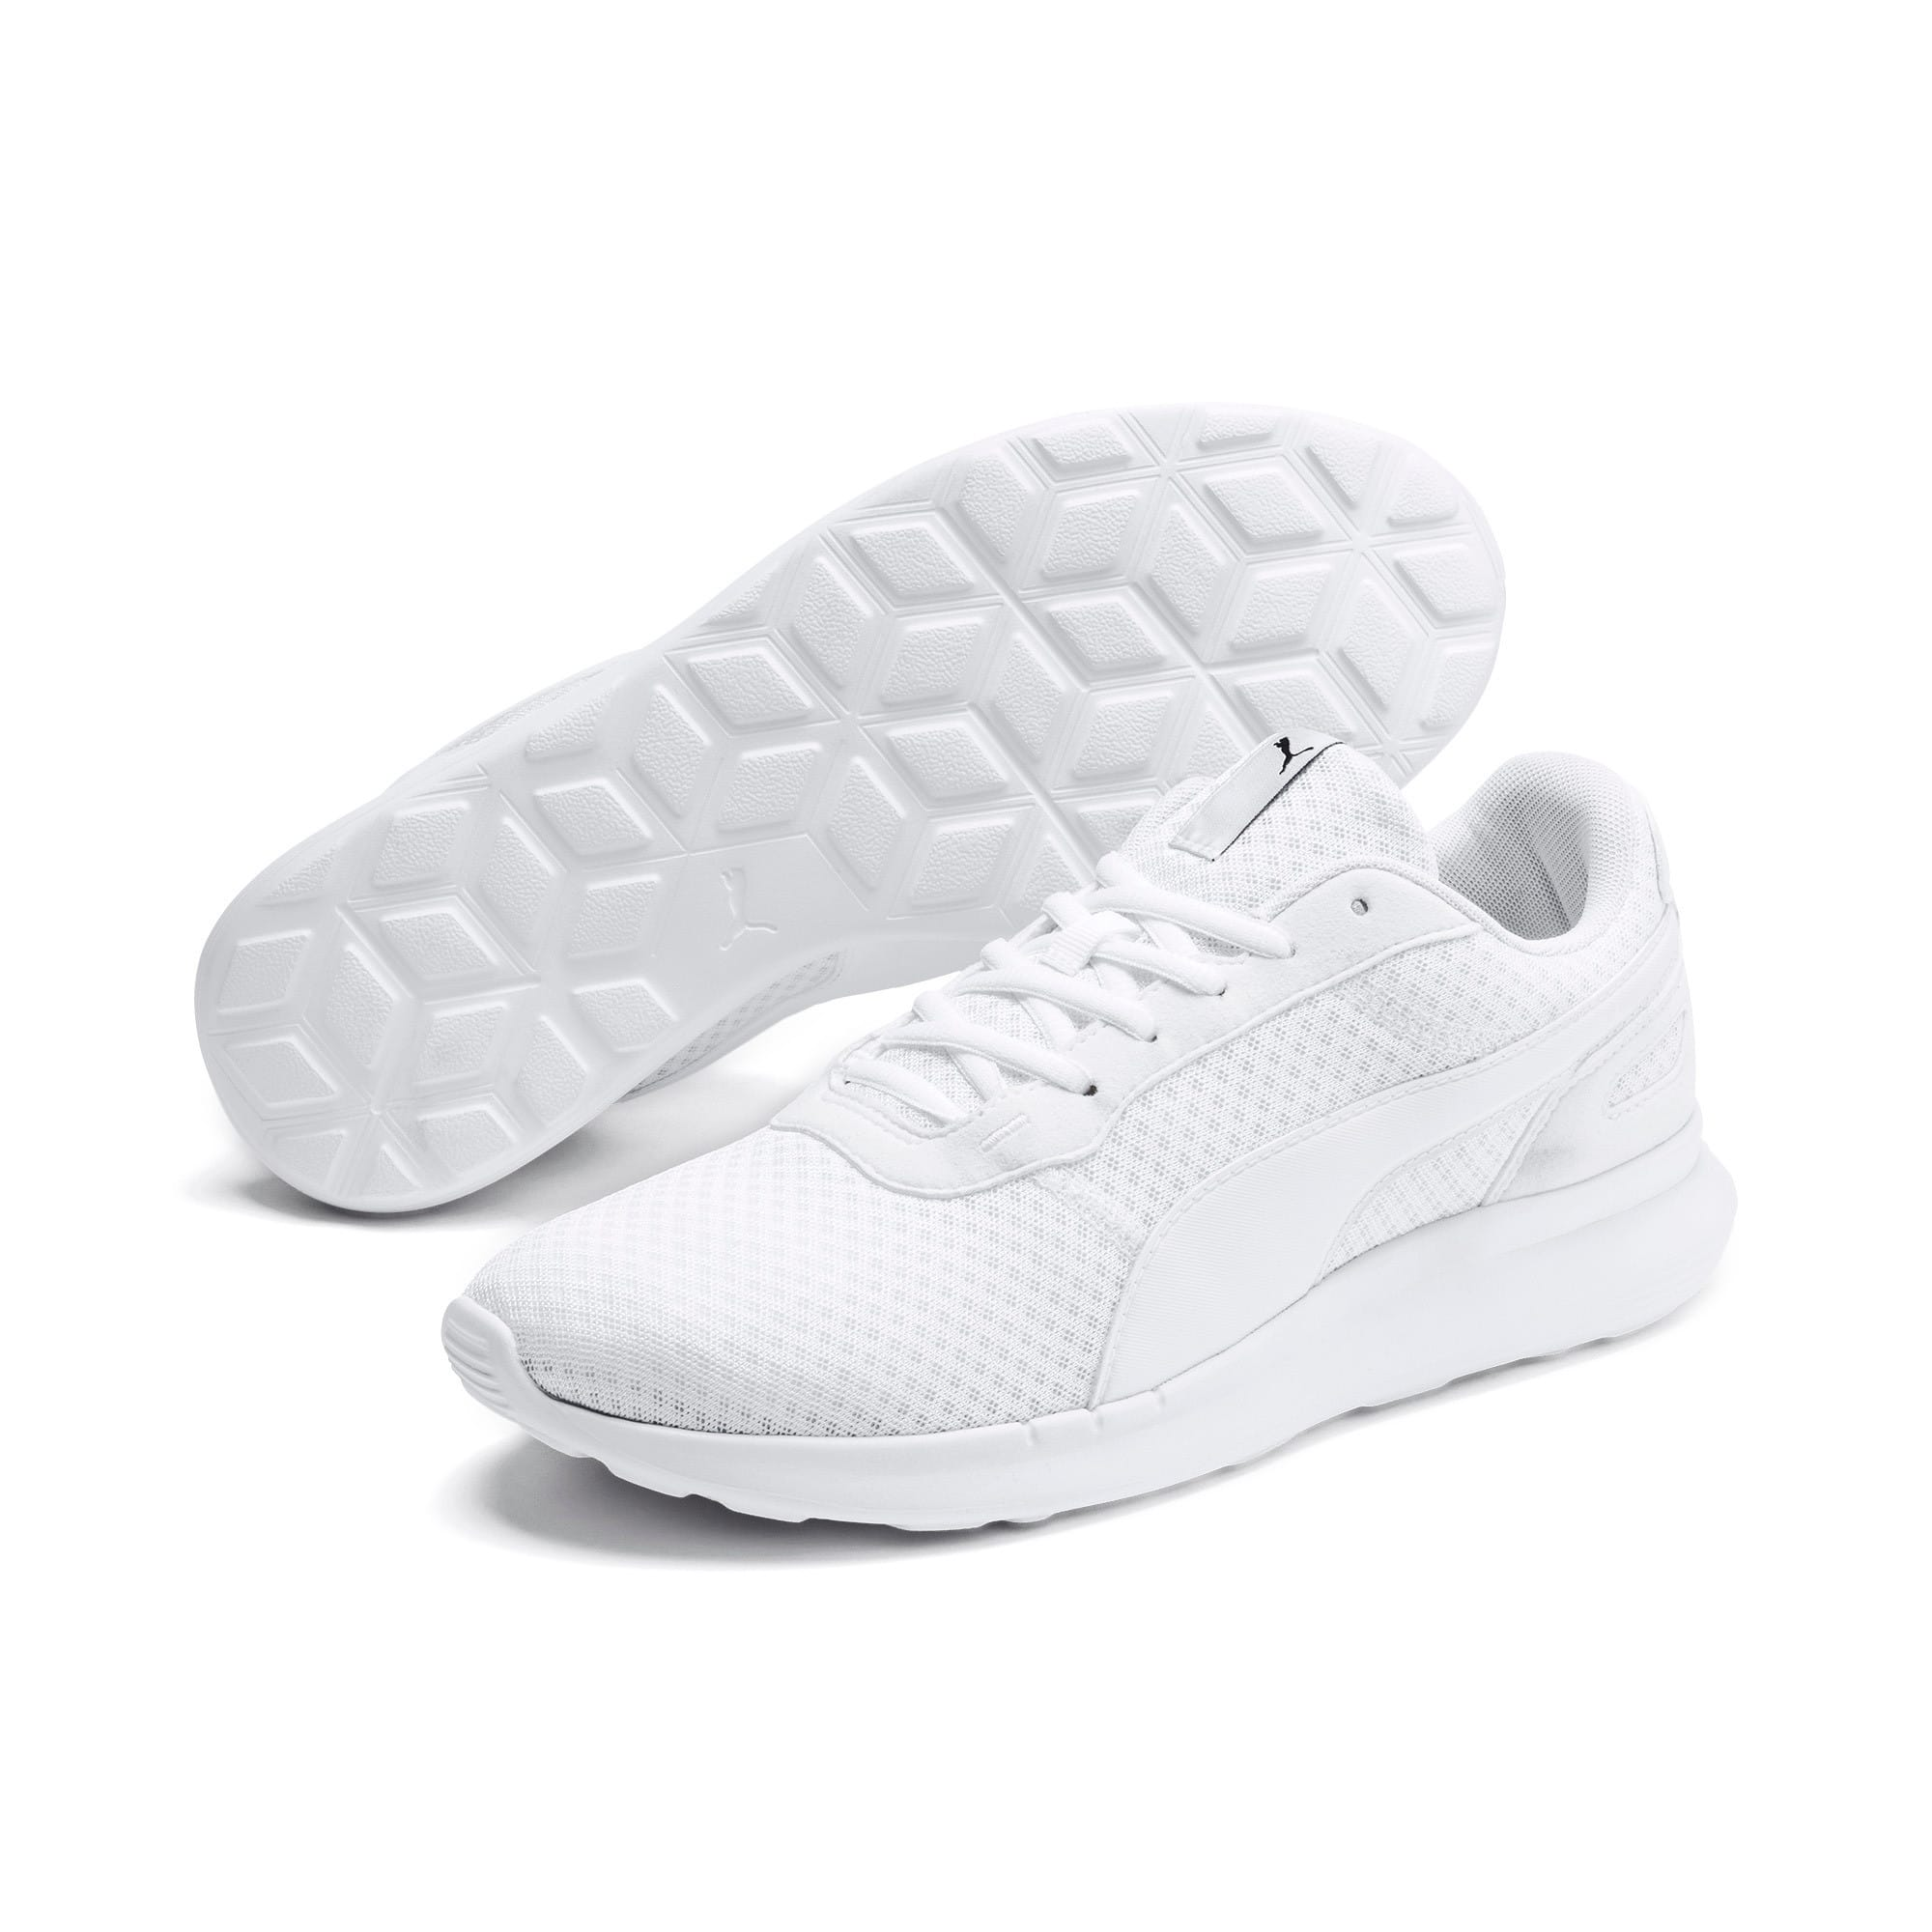 Thumbnail 2 of ST Activate Sneakers, Puma White-Puma White, medium